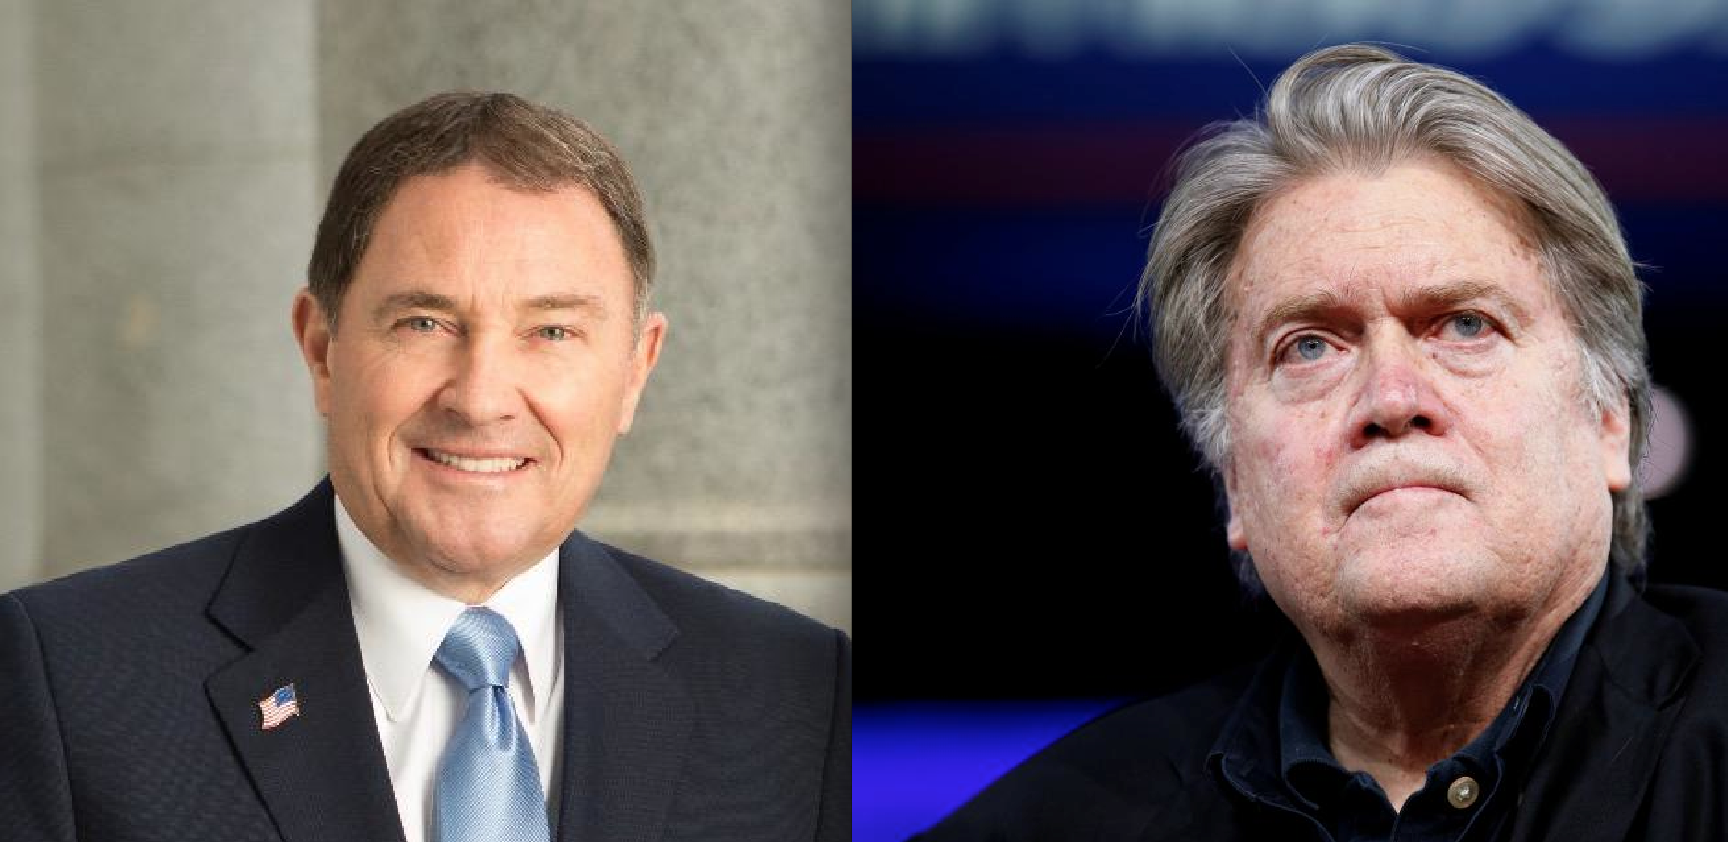 Conservative Utah Gov. Gary Herbert Rips Steve Bannon a New One For His 'Mormon Bigotry'